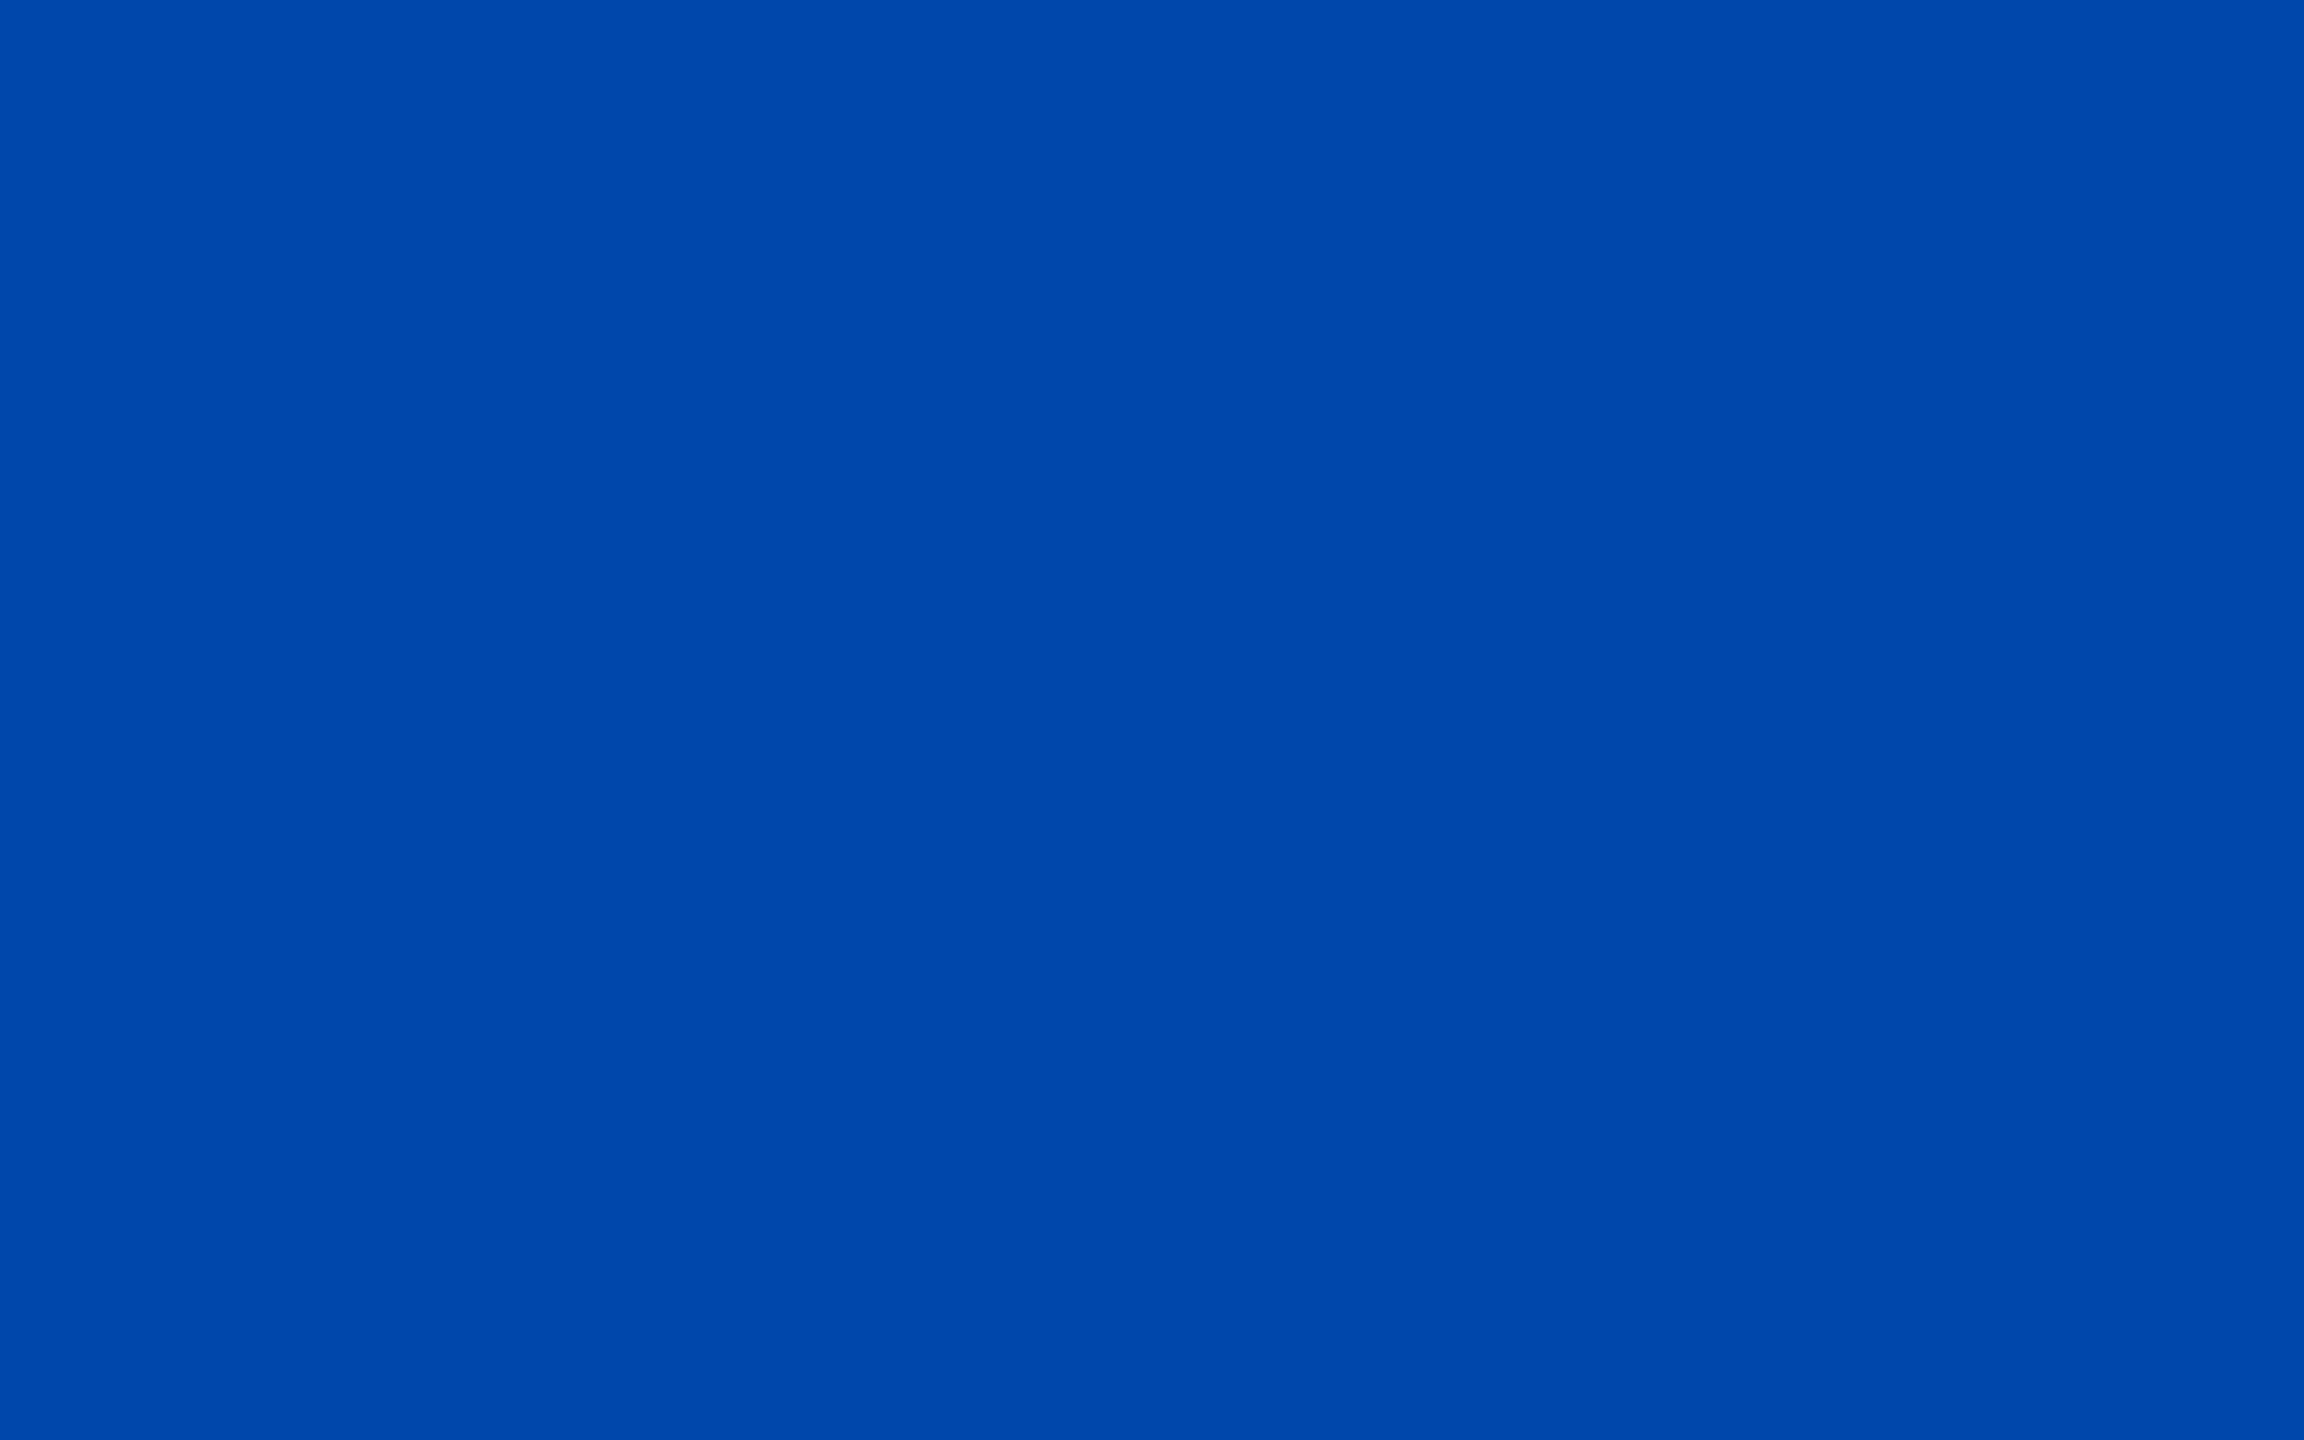 2304x1440 Cobalt Solid Color Background